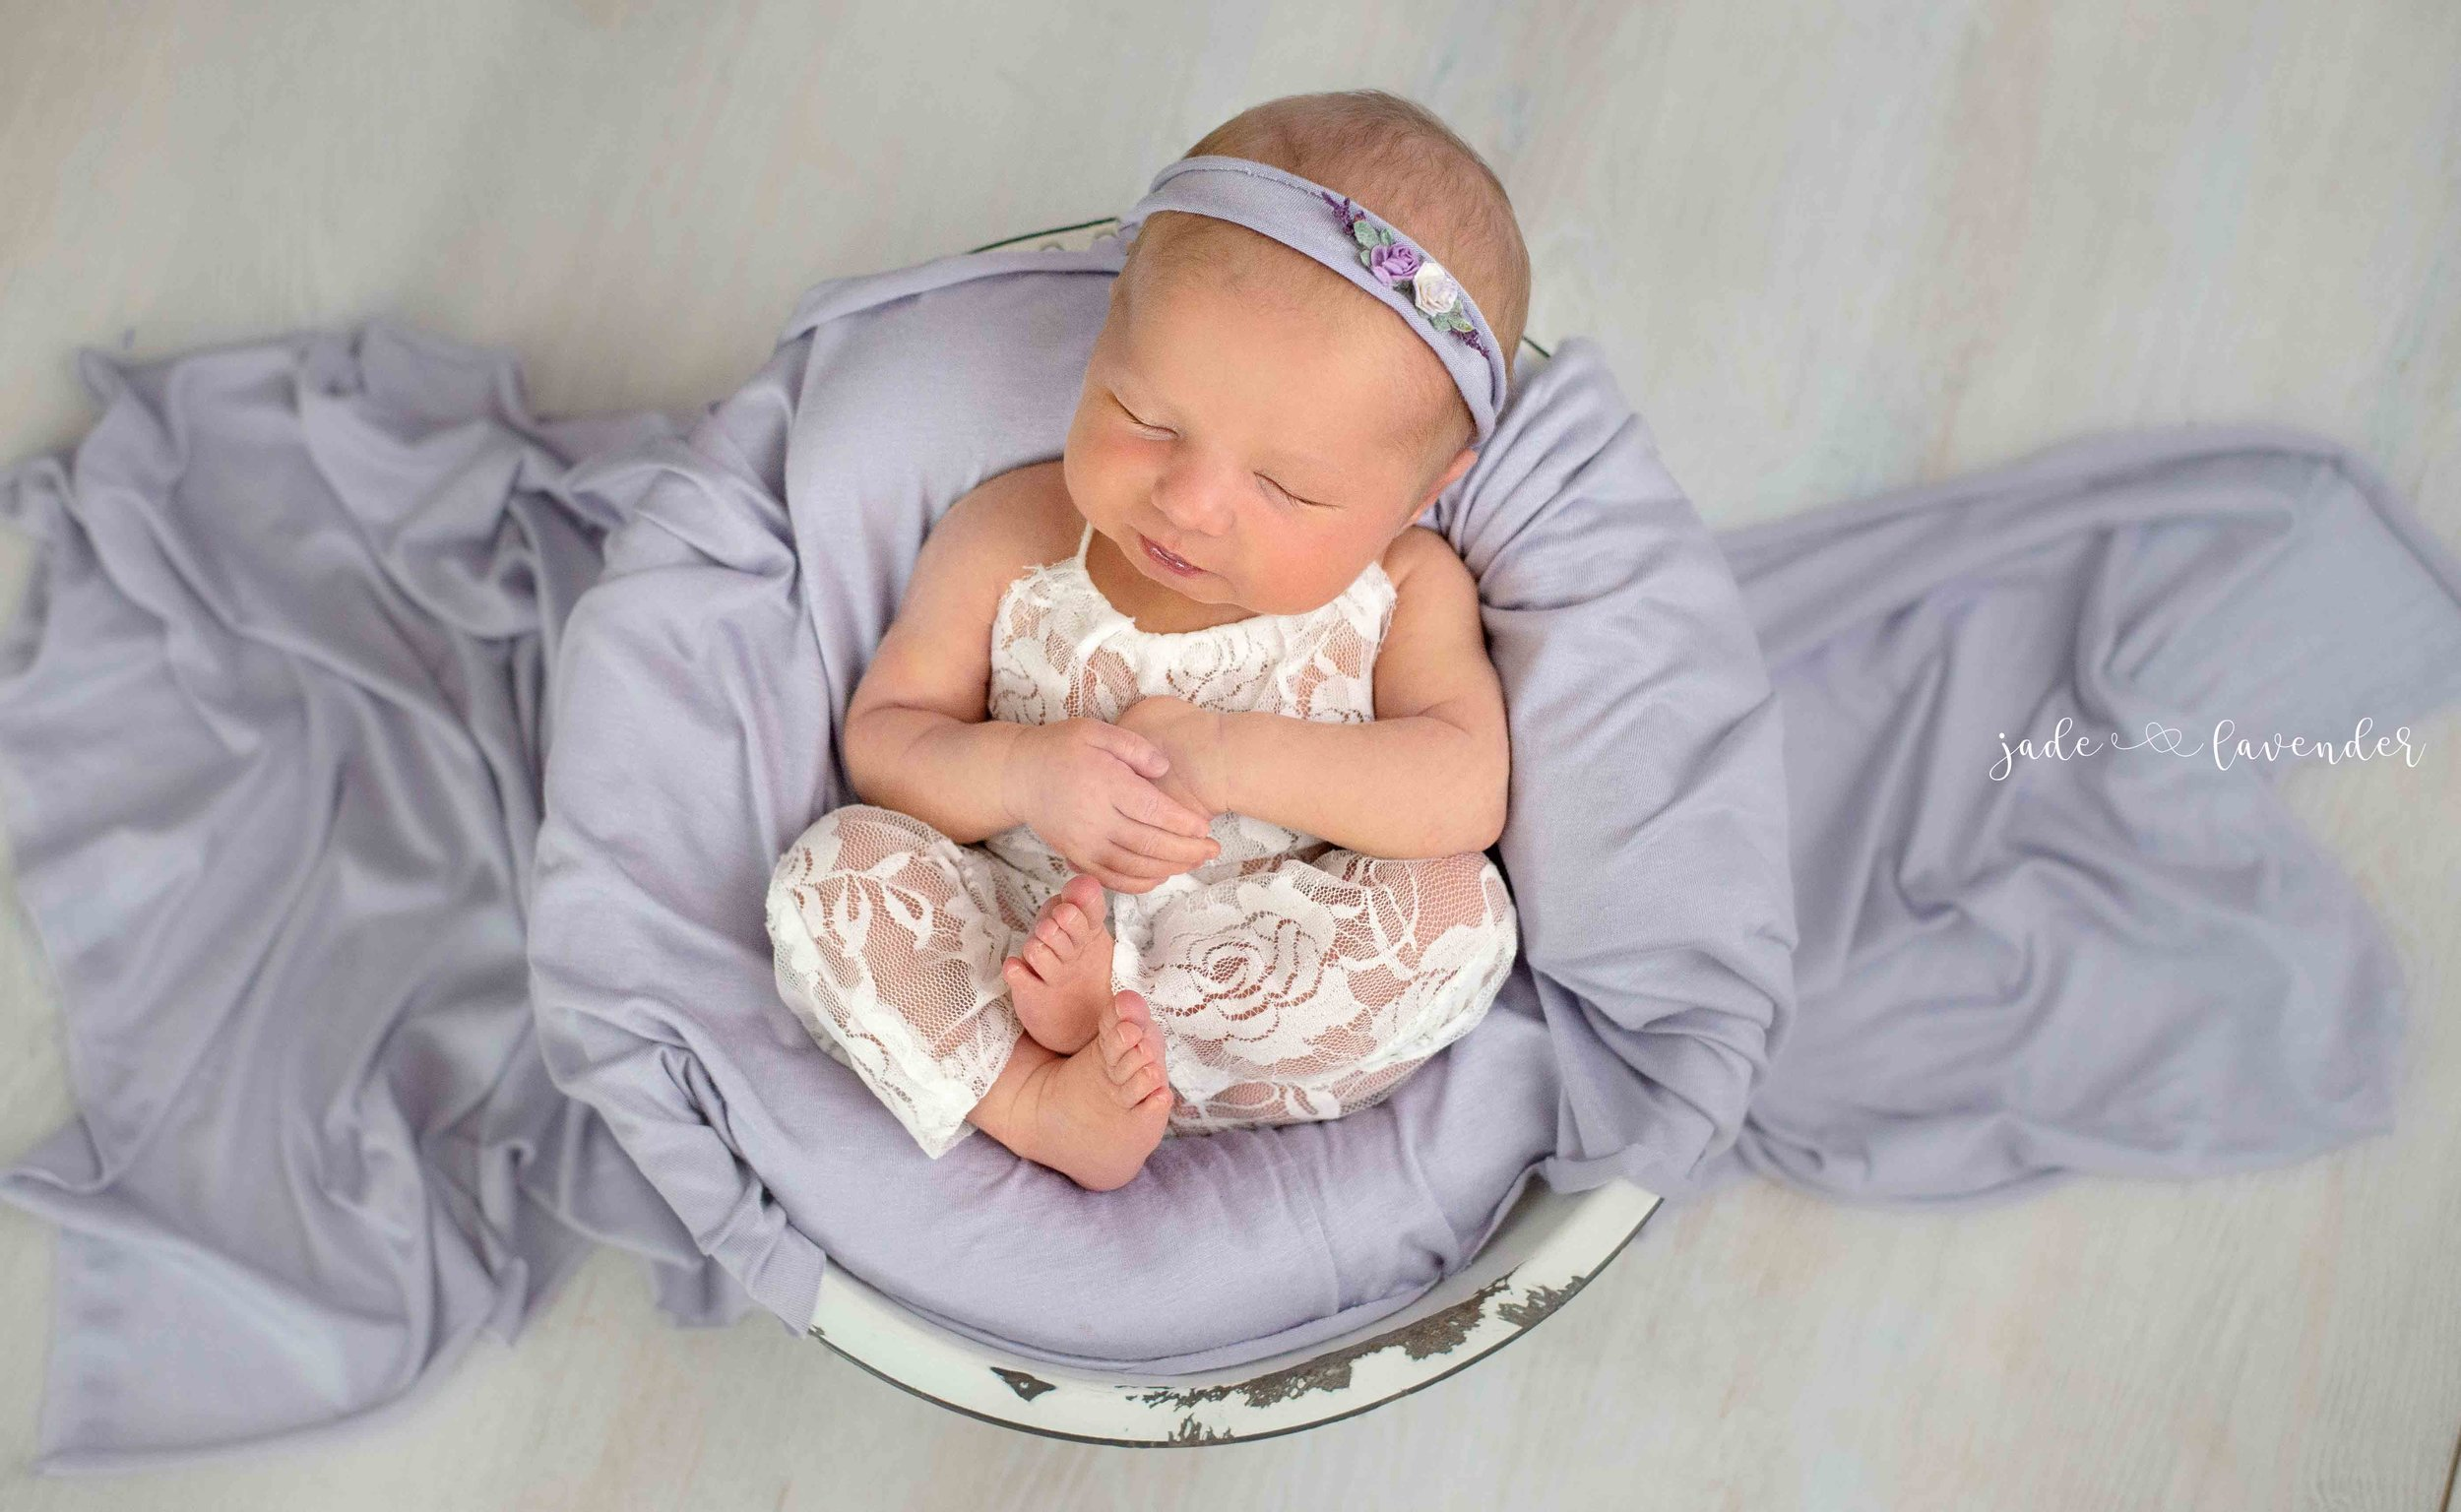 Newborn-photos-baby-photoshoot-spokane-washington-cute-purple-lace.jpg